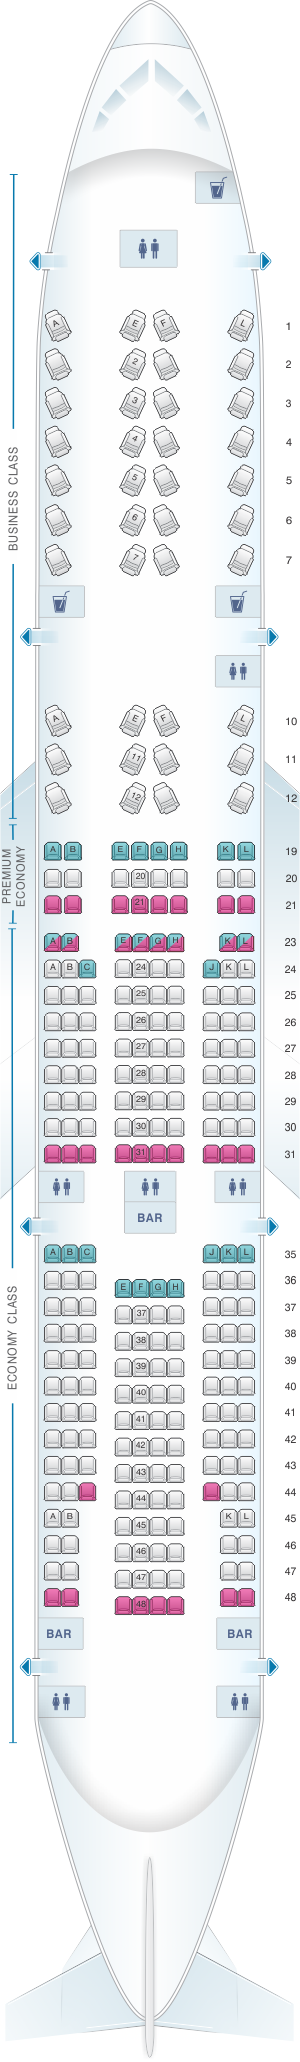 Seat map for Air France Boeing B777 200 International Long-Haul 280pax